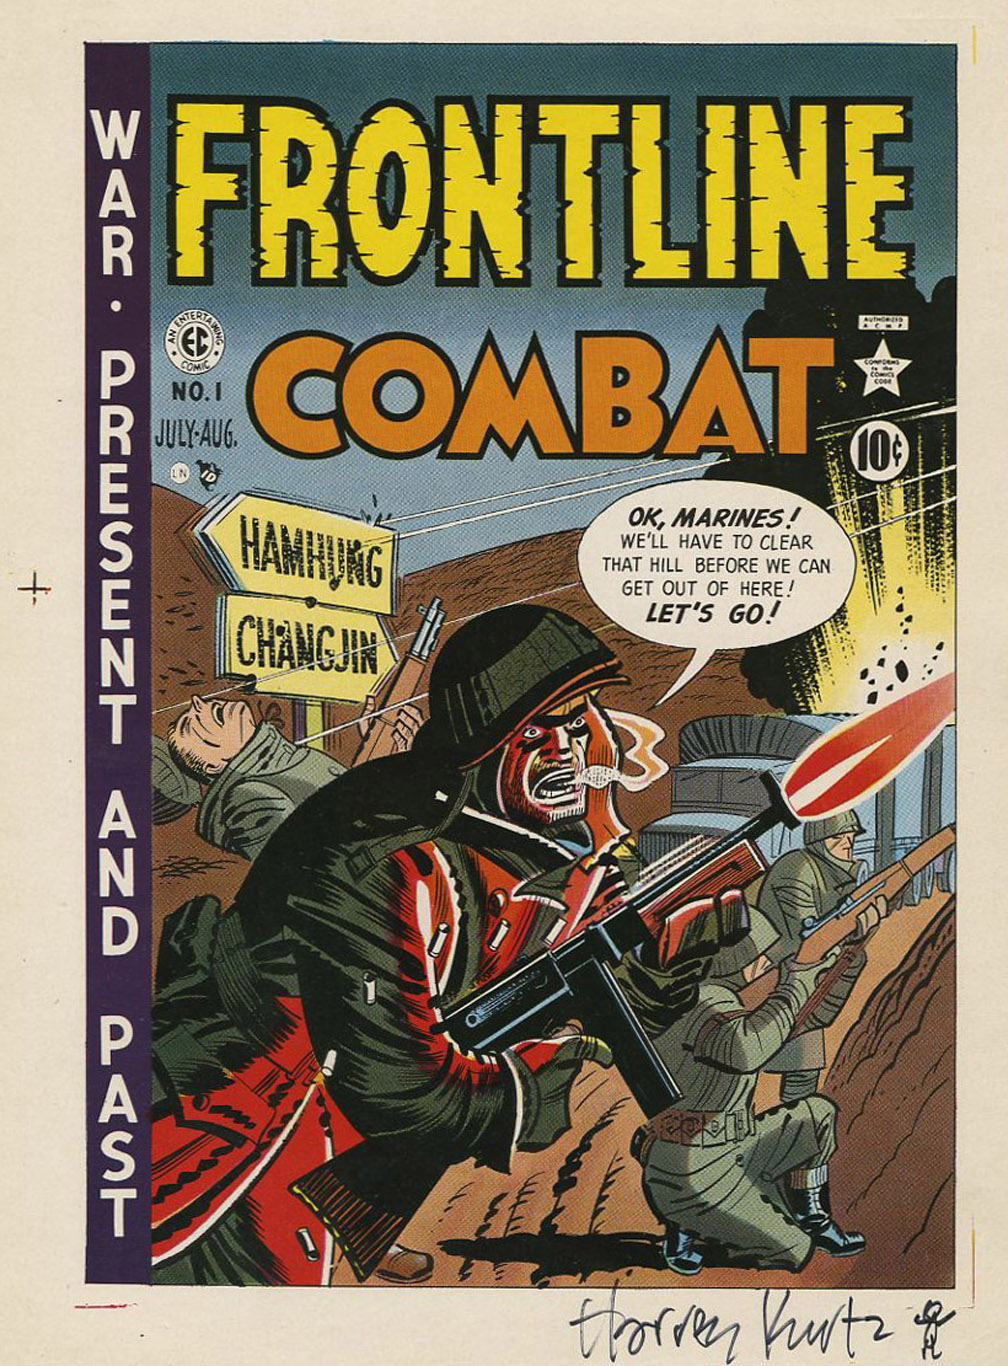 Frontline+Combat+cover+proof+with+signature